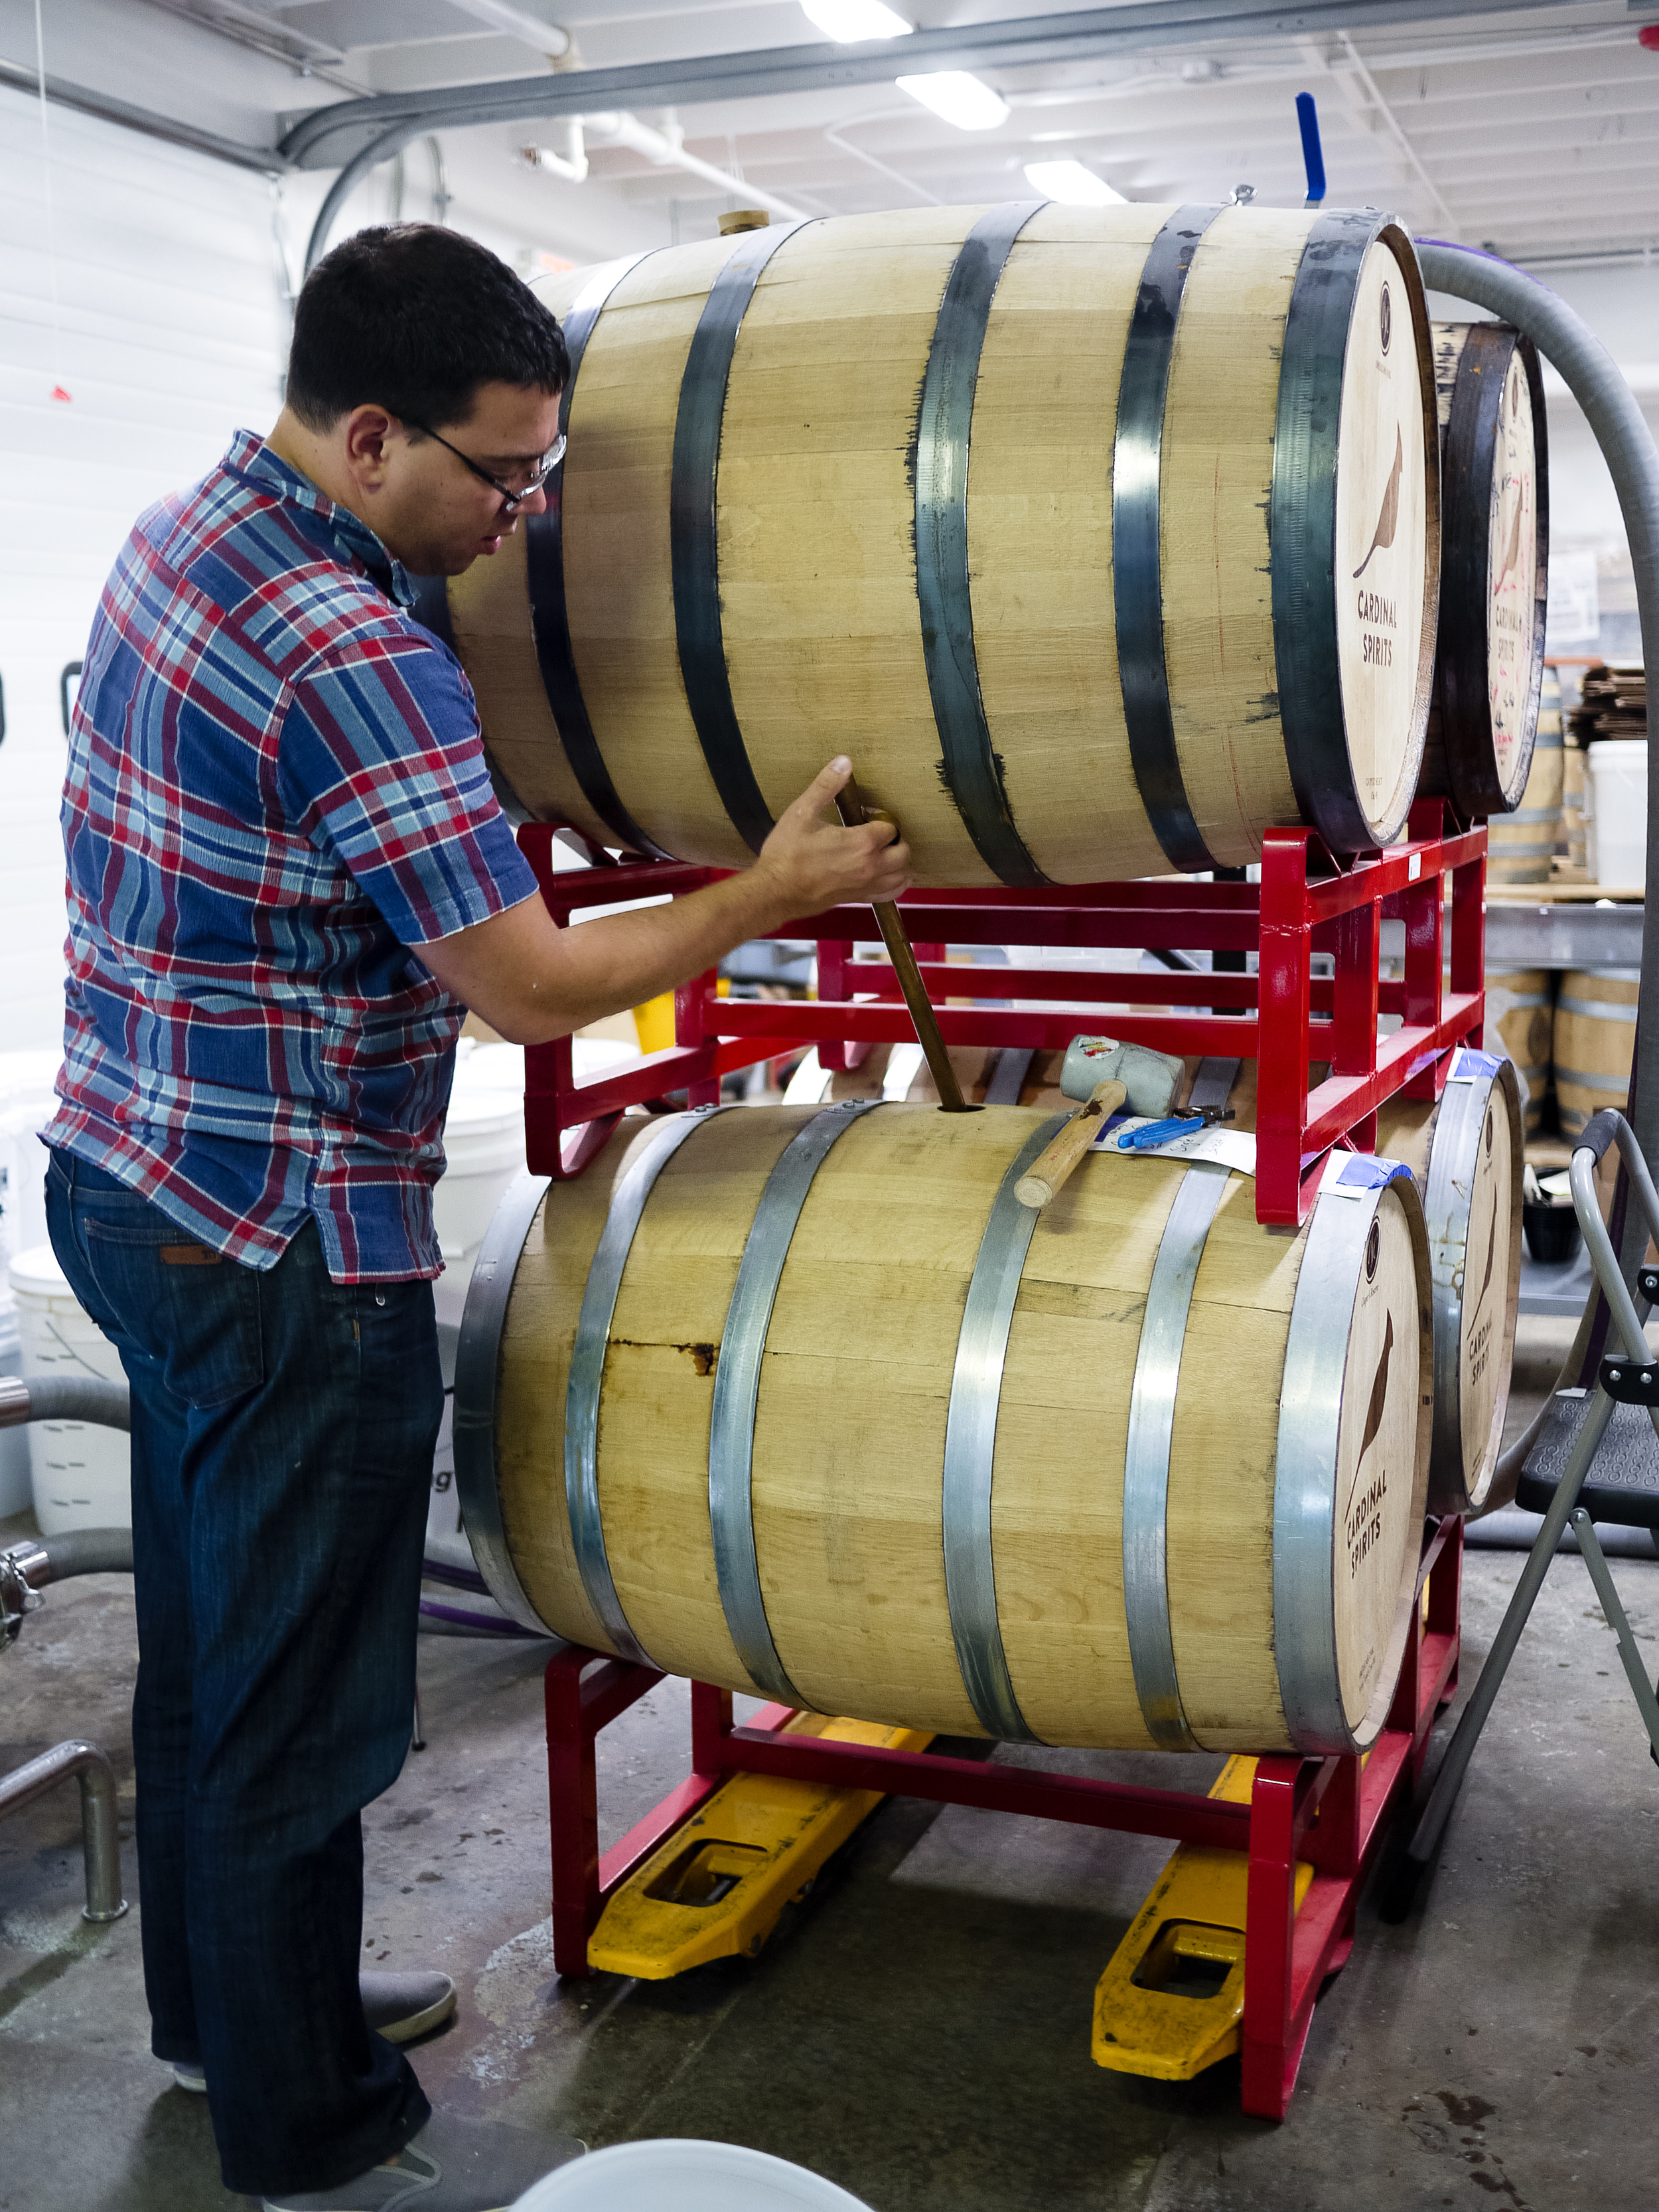 That's Cardinal co-founder Jeff Wuslich checking on the contents of the barrels using a whiskey thief, a tool that pulls out a small sample.